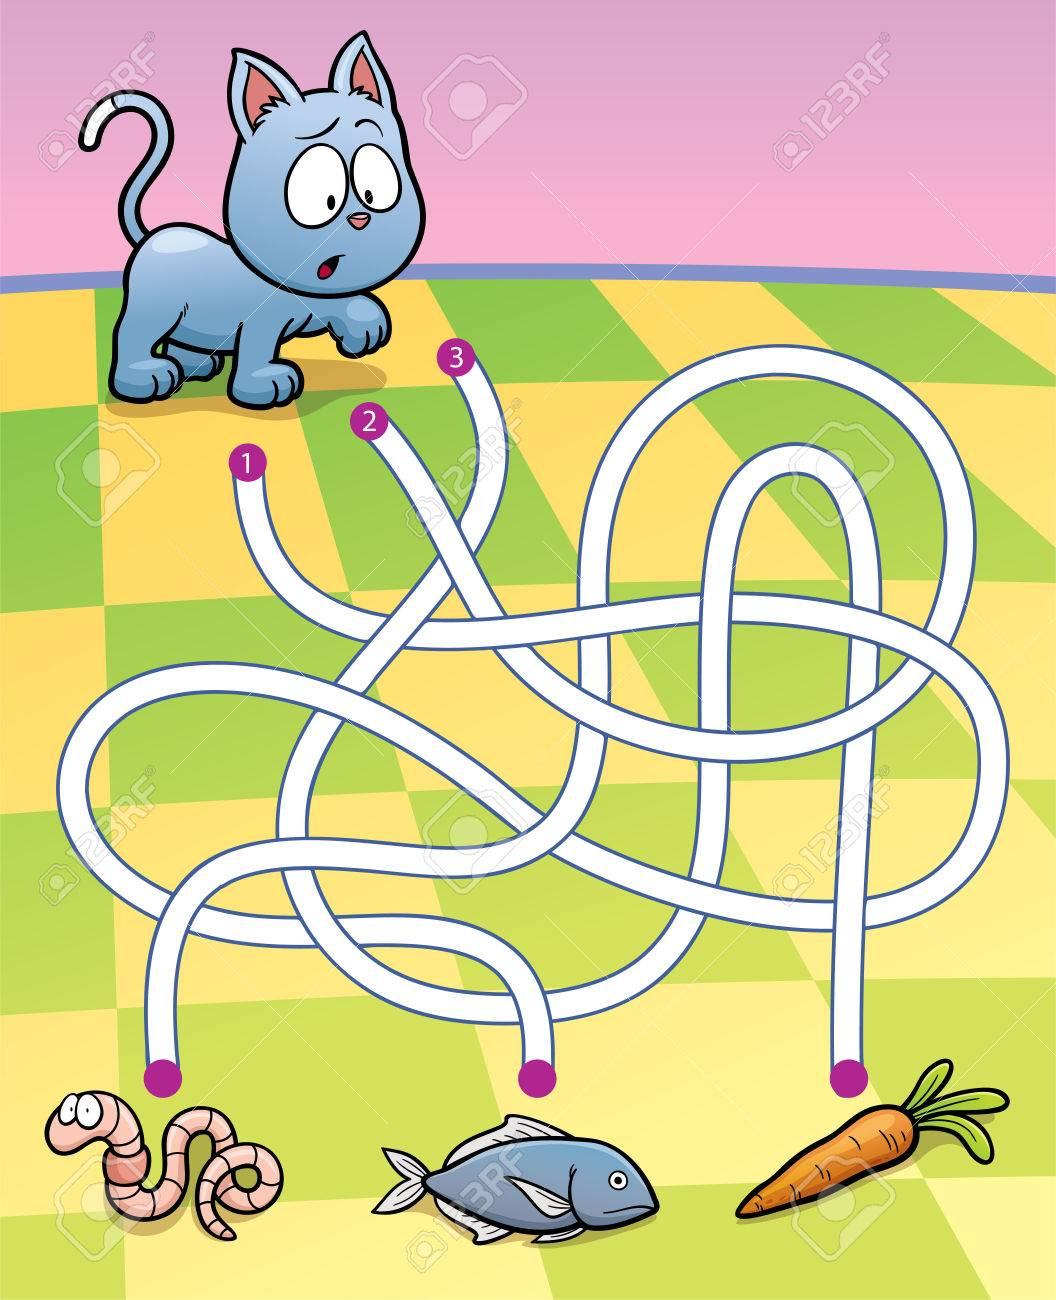 Vector Illustration of Education Maze Game Cat with food - 43675889